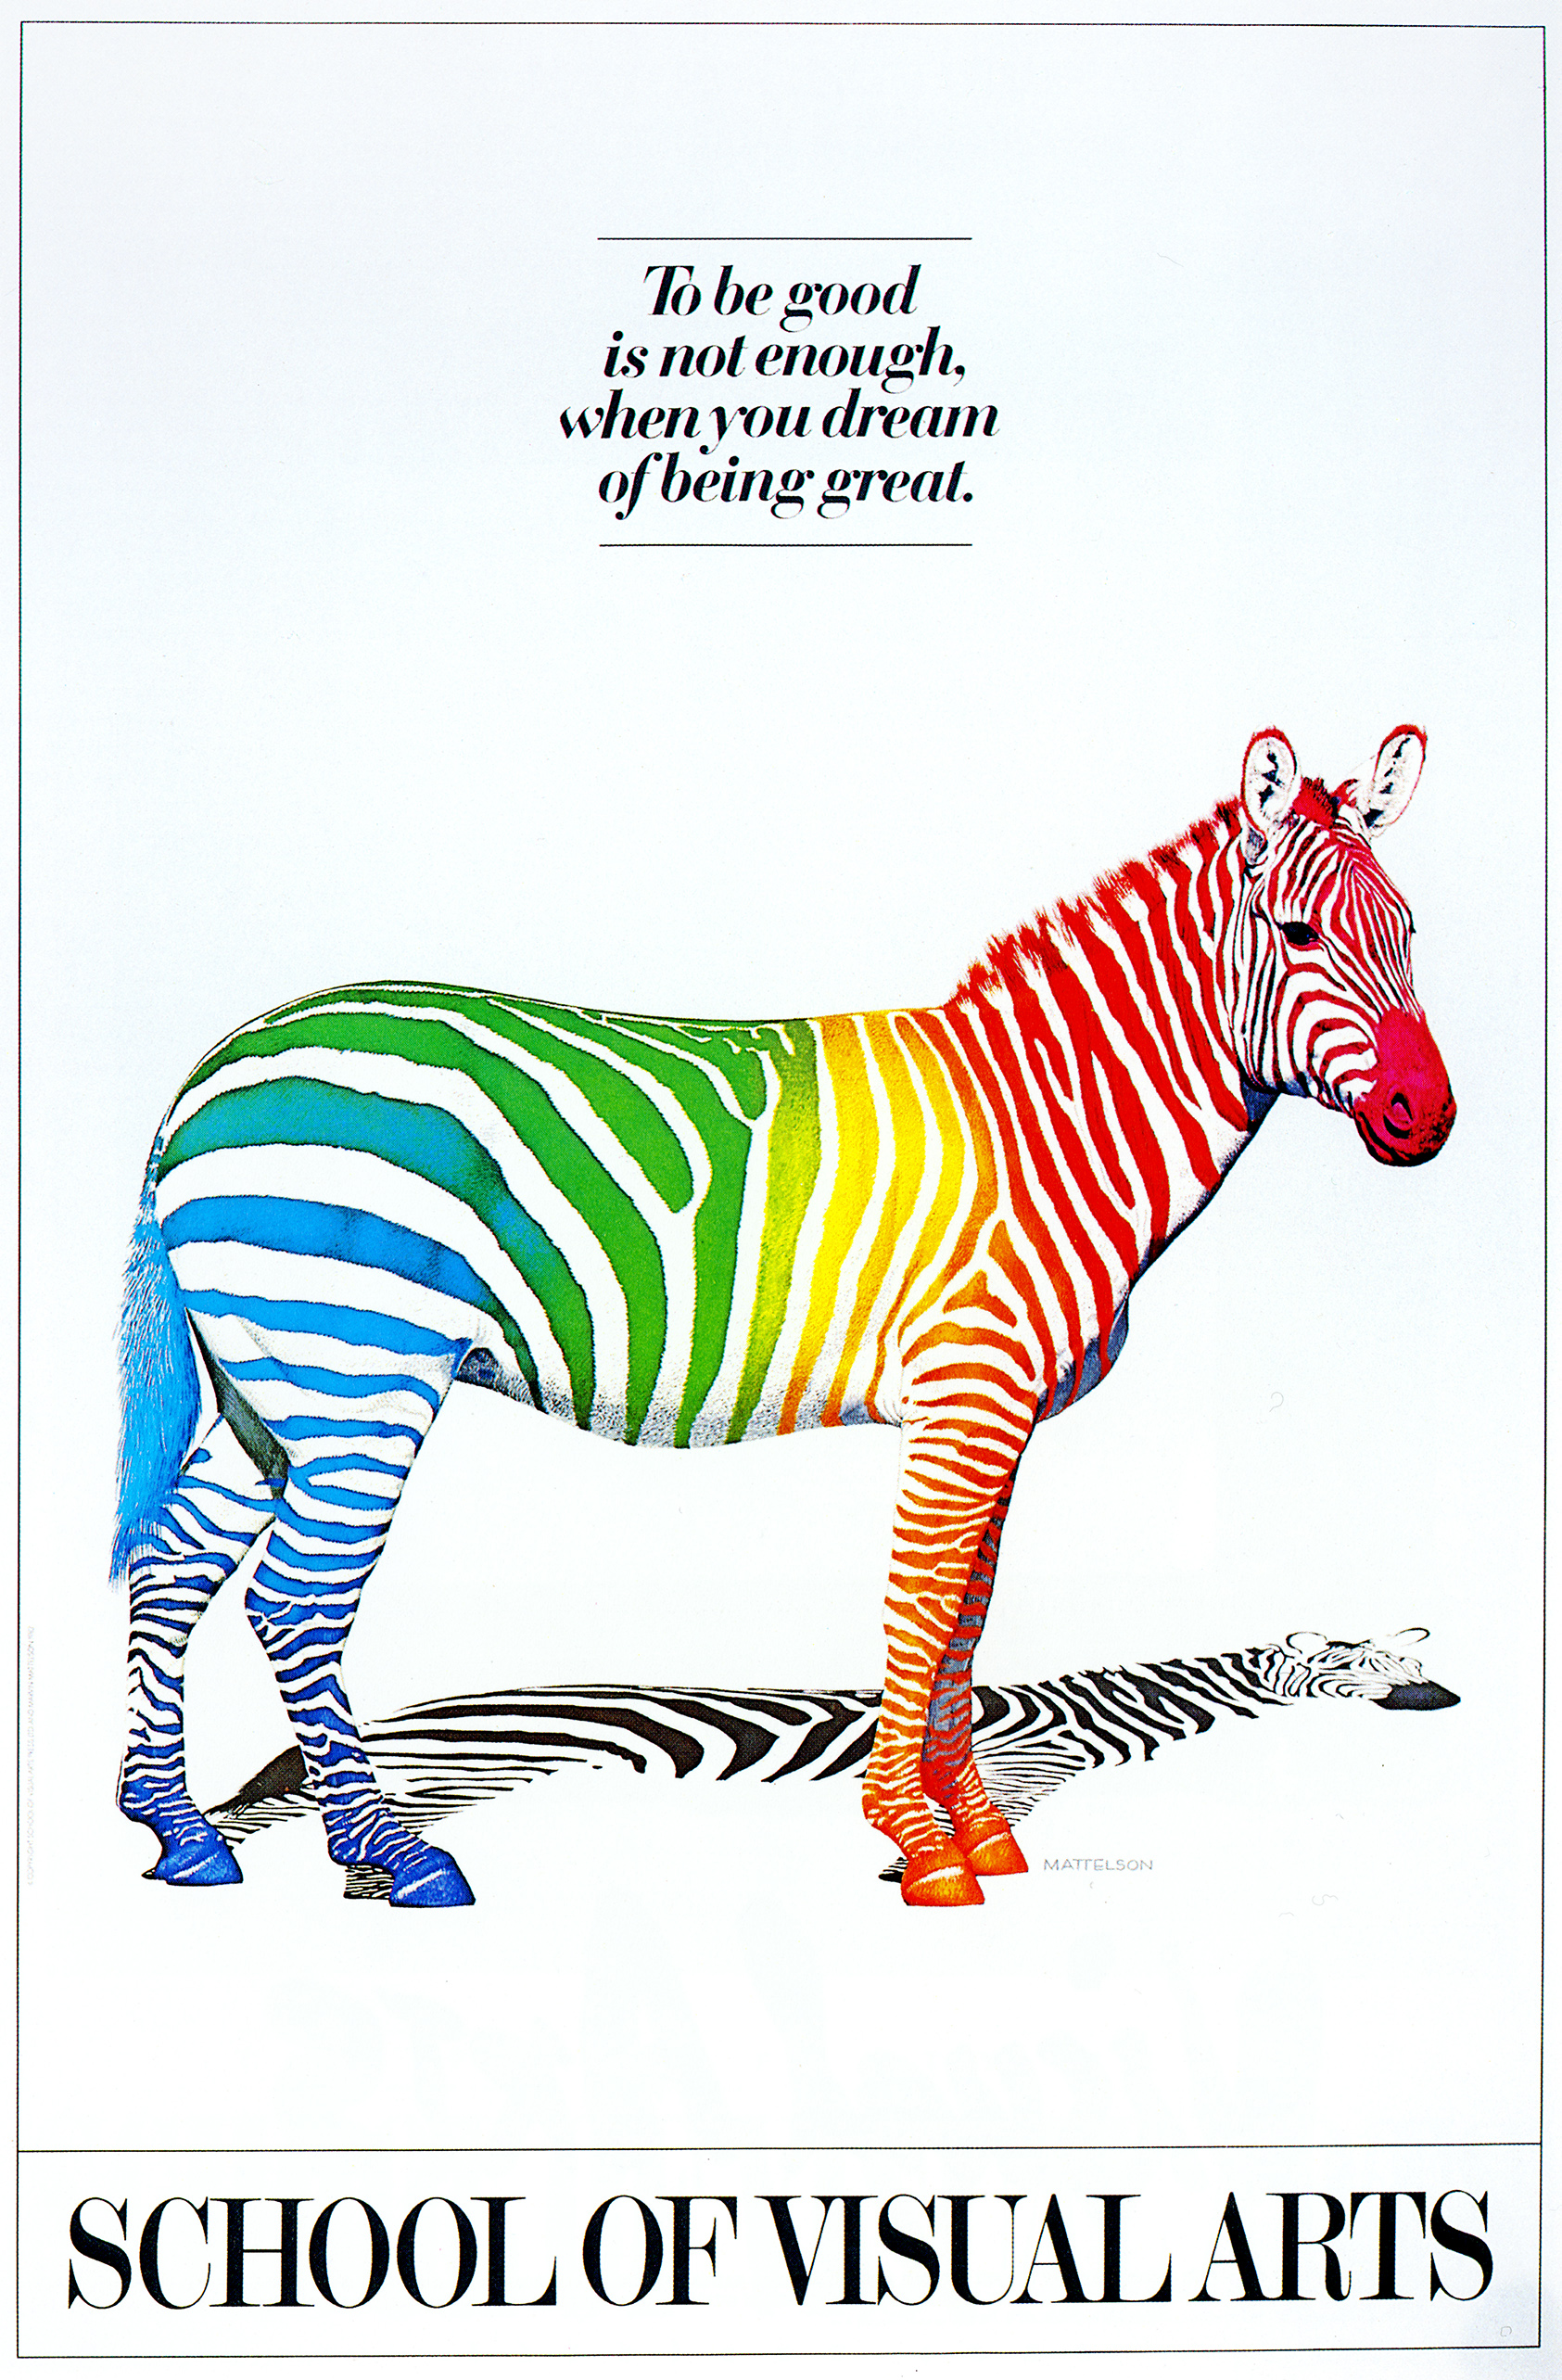 Realistic illustration of a zebra with rainbow stripes against a white background.